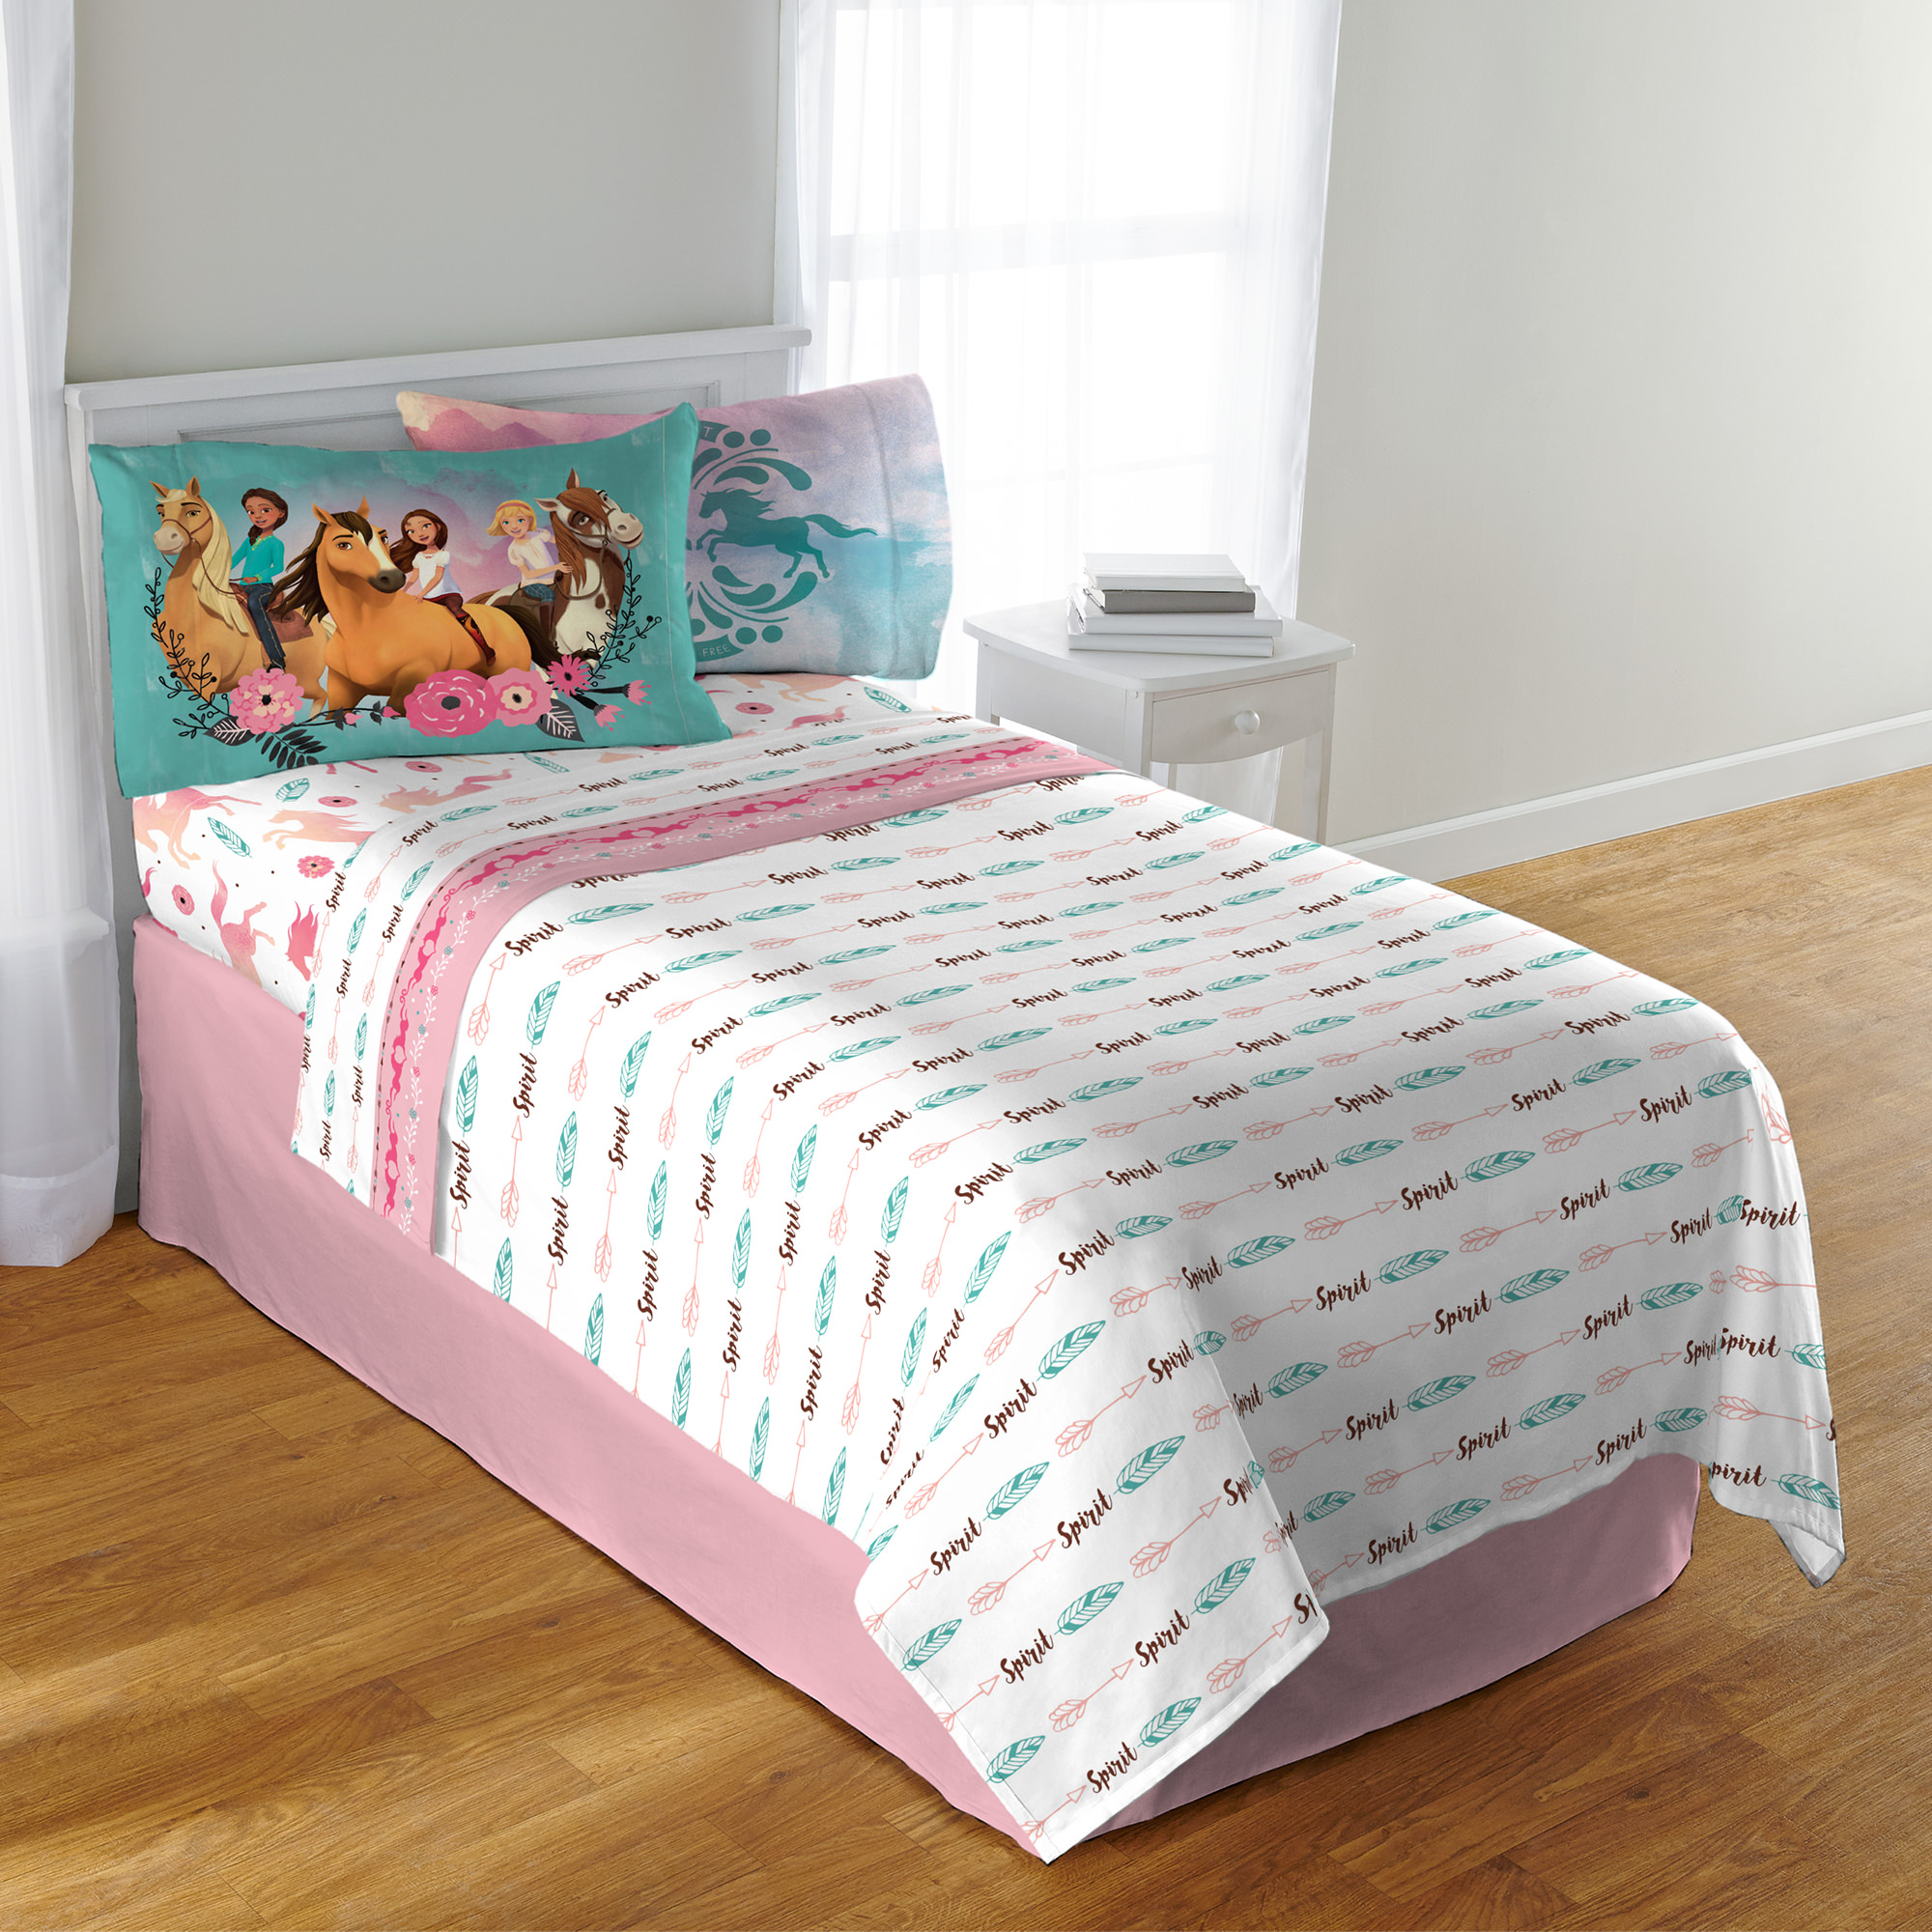 DreamWorks Spirit 'Giddy Up' Kids Bedding Twin Sheet Set, 1 Each